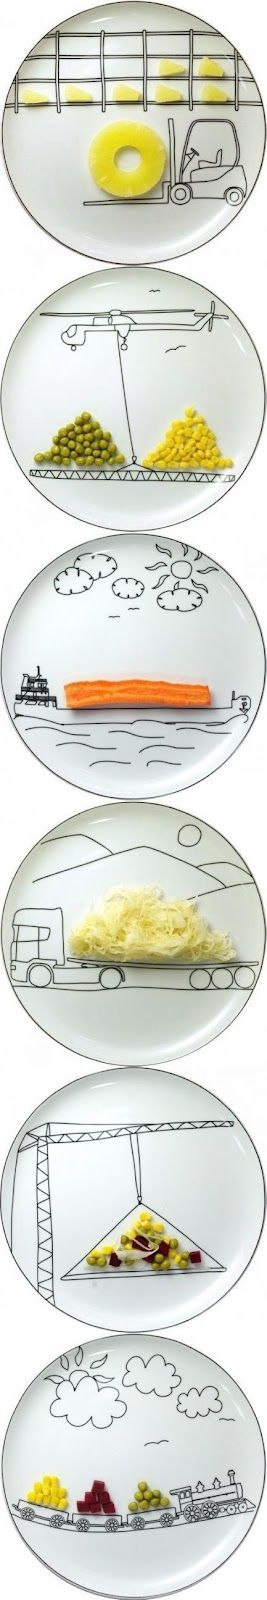 DIY Plate Art - or how to get your kids to eat their veg♥